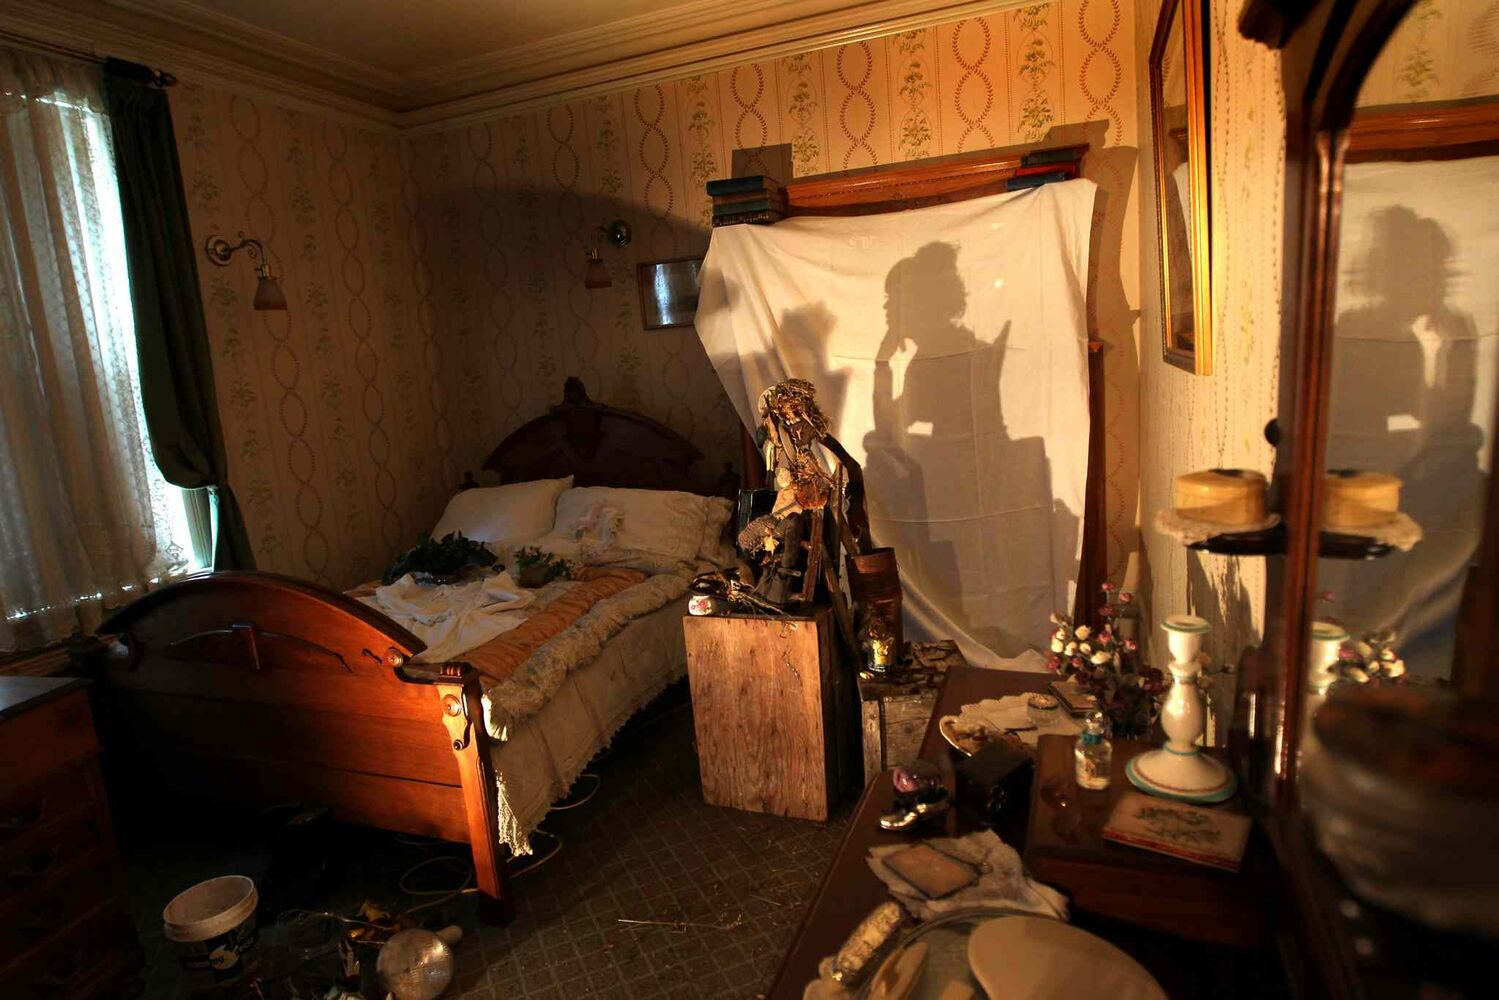 In this 2010 photo, Helga Jakobson's Shadow Play is displayed at Dalnavert Museum as part of Phantasmagoria, a spooky, ghostly show with various artist exhibits showcased in different rooms throughout the house. (Ruth Bonneville / Winnipeg Free Press archives)